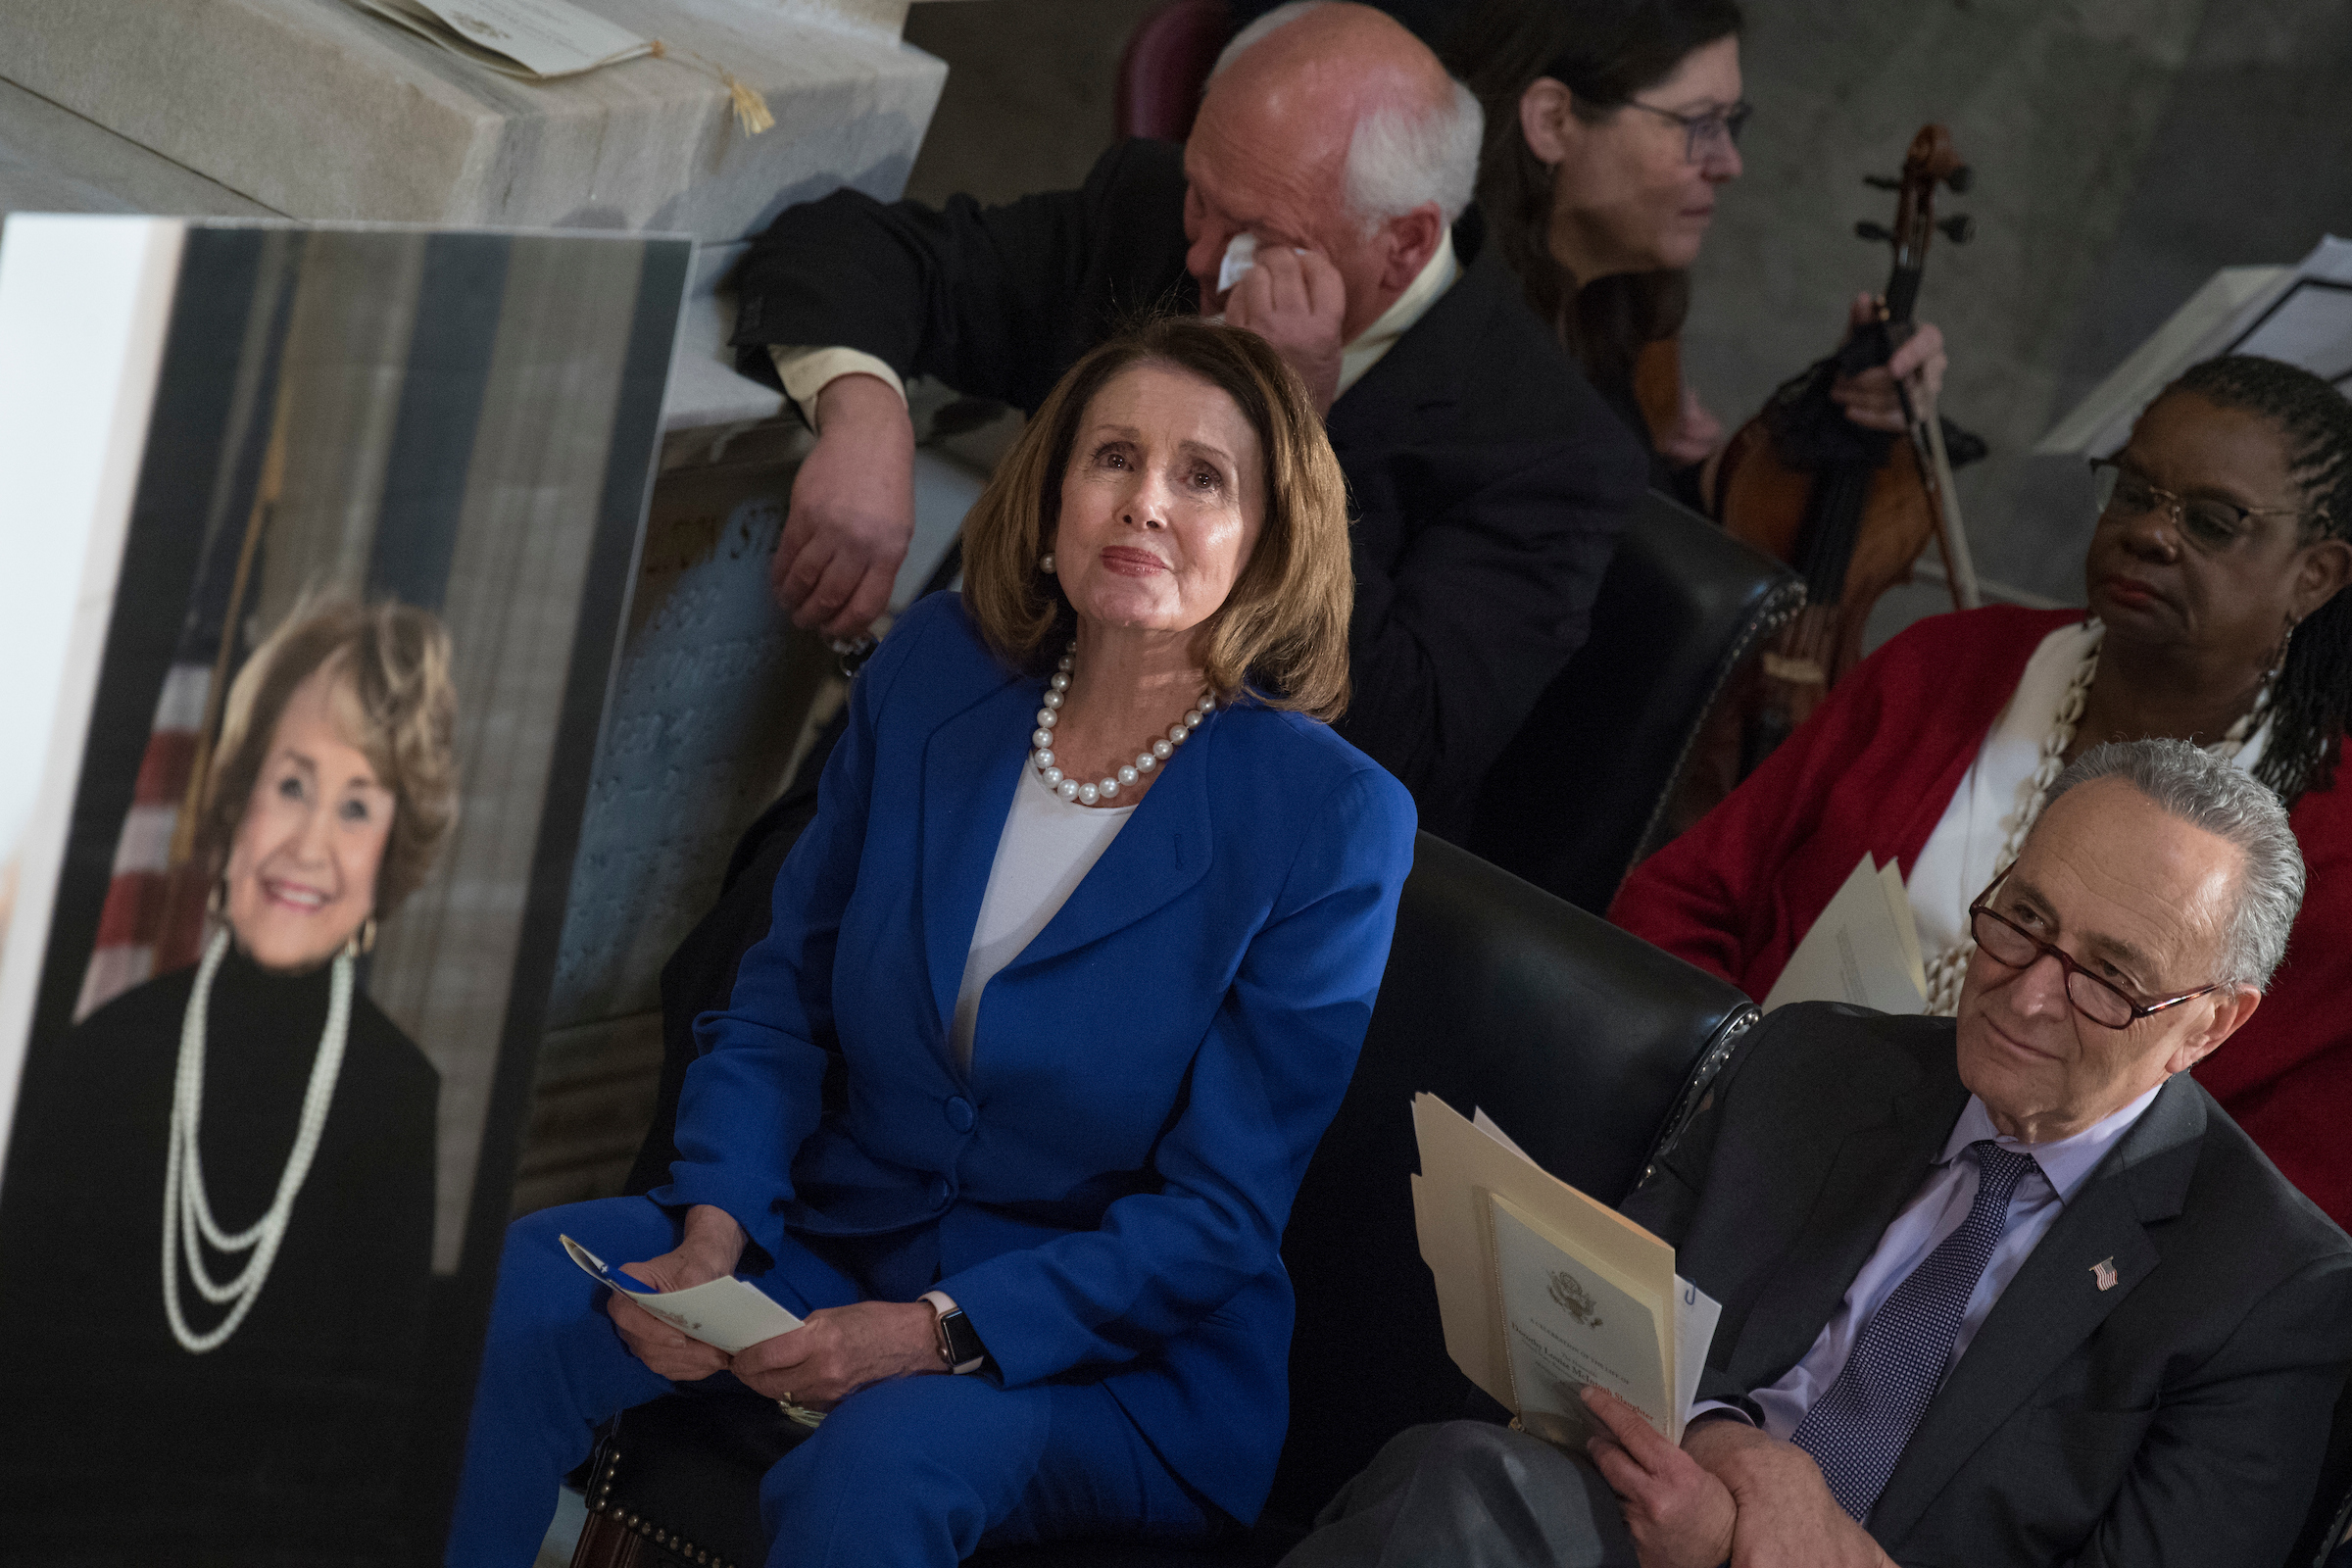 "House Minority Leader Nancy Pelosi, D-Calif., center, Senate Minority Leader Charles Schumer, D-N.Y., right, Reps. Gwen Moore, D-Wis., and Paul Tonko, D-N.Y., listen to rendition of ""Amazing Grace"" during a memorial service for the late Rep. Louise Slaughter, D-N.Y., in the Capitol's Statuary Hall on April 18, 2018. Slaughter, pictured at left, passed away on March 16, 2018, at age 88. (Photo By Tom Williams/CQ Roll Call)"